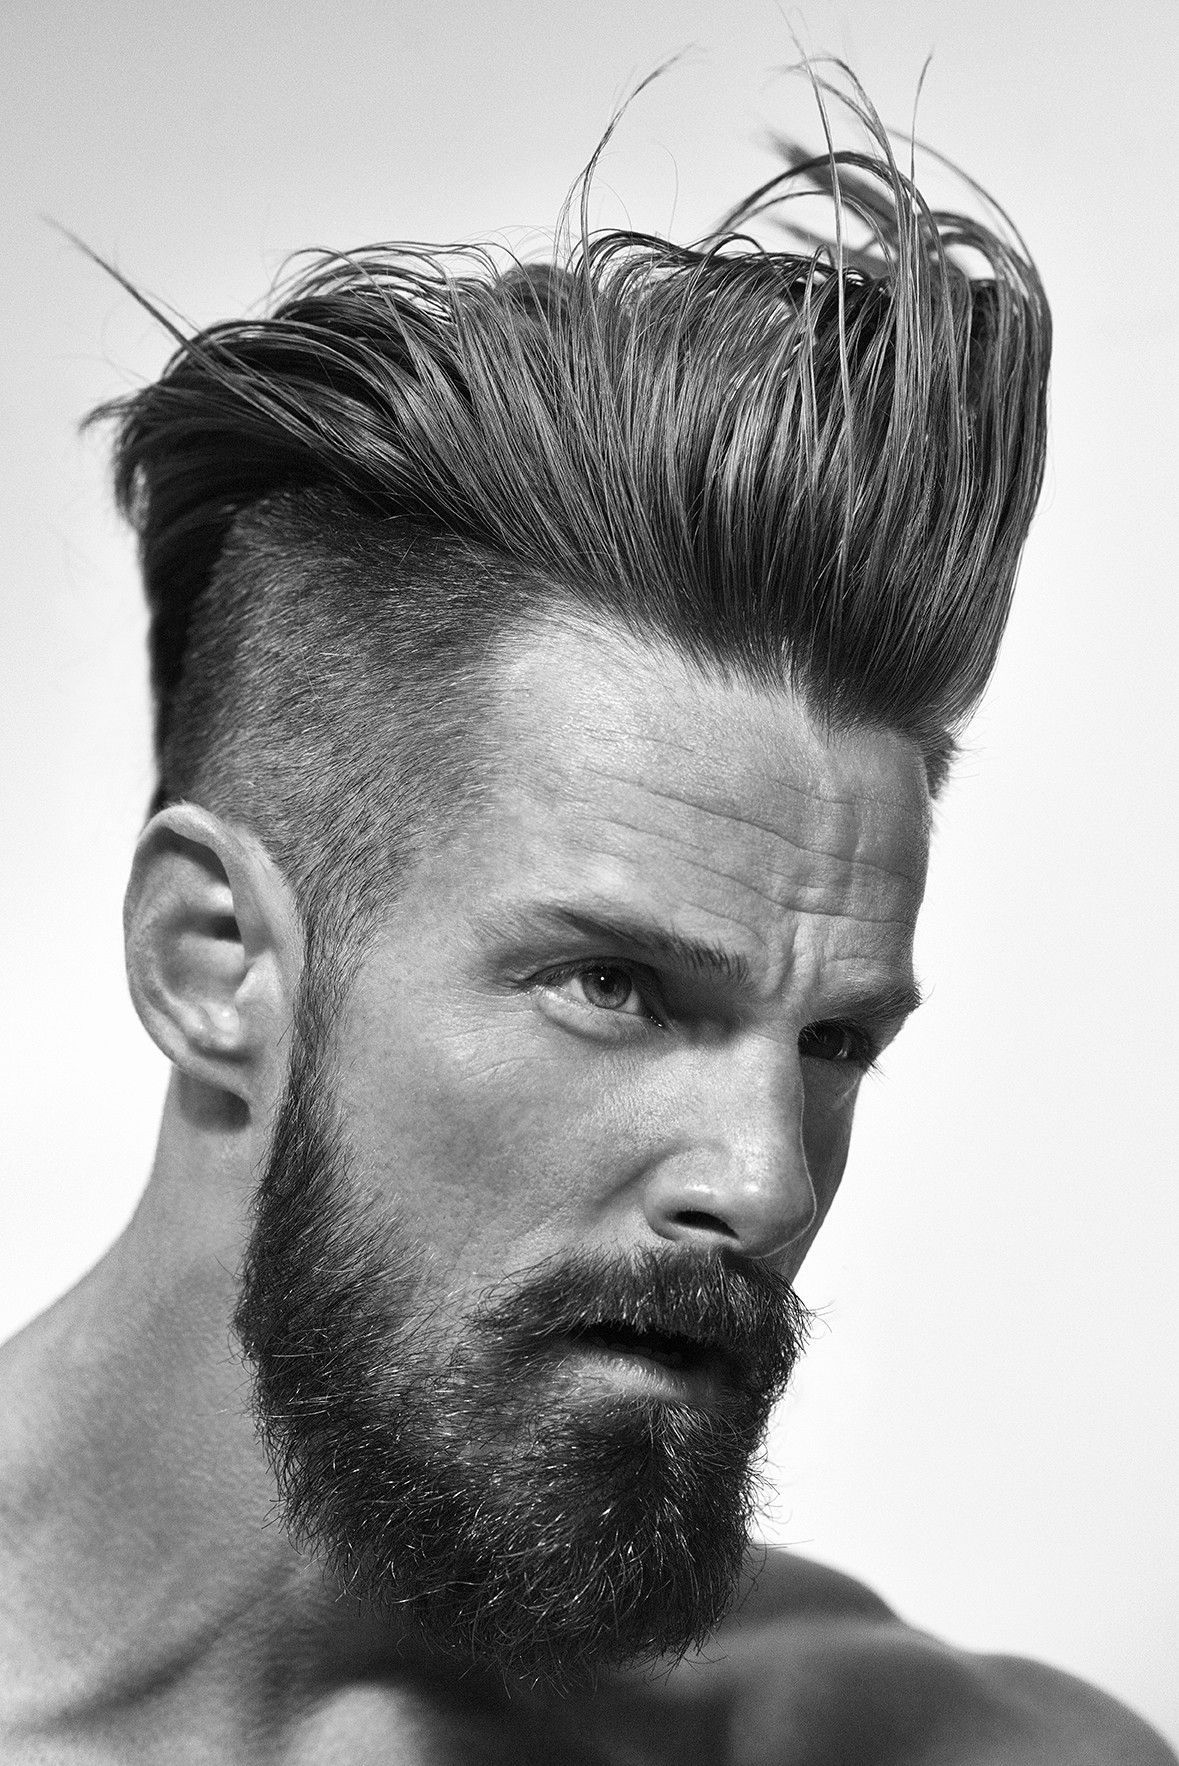 man hair style pic hair beard mrobenlook in 2019 hair beard styles 8834 | 2af8834eb2178464e1e27f4b58aa9b66